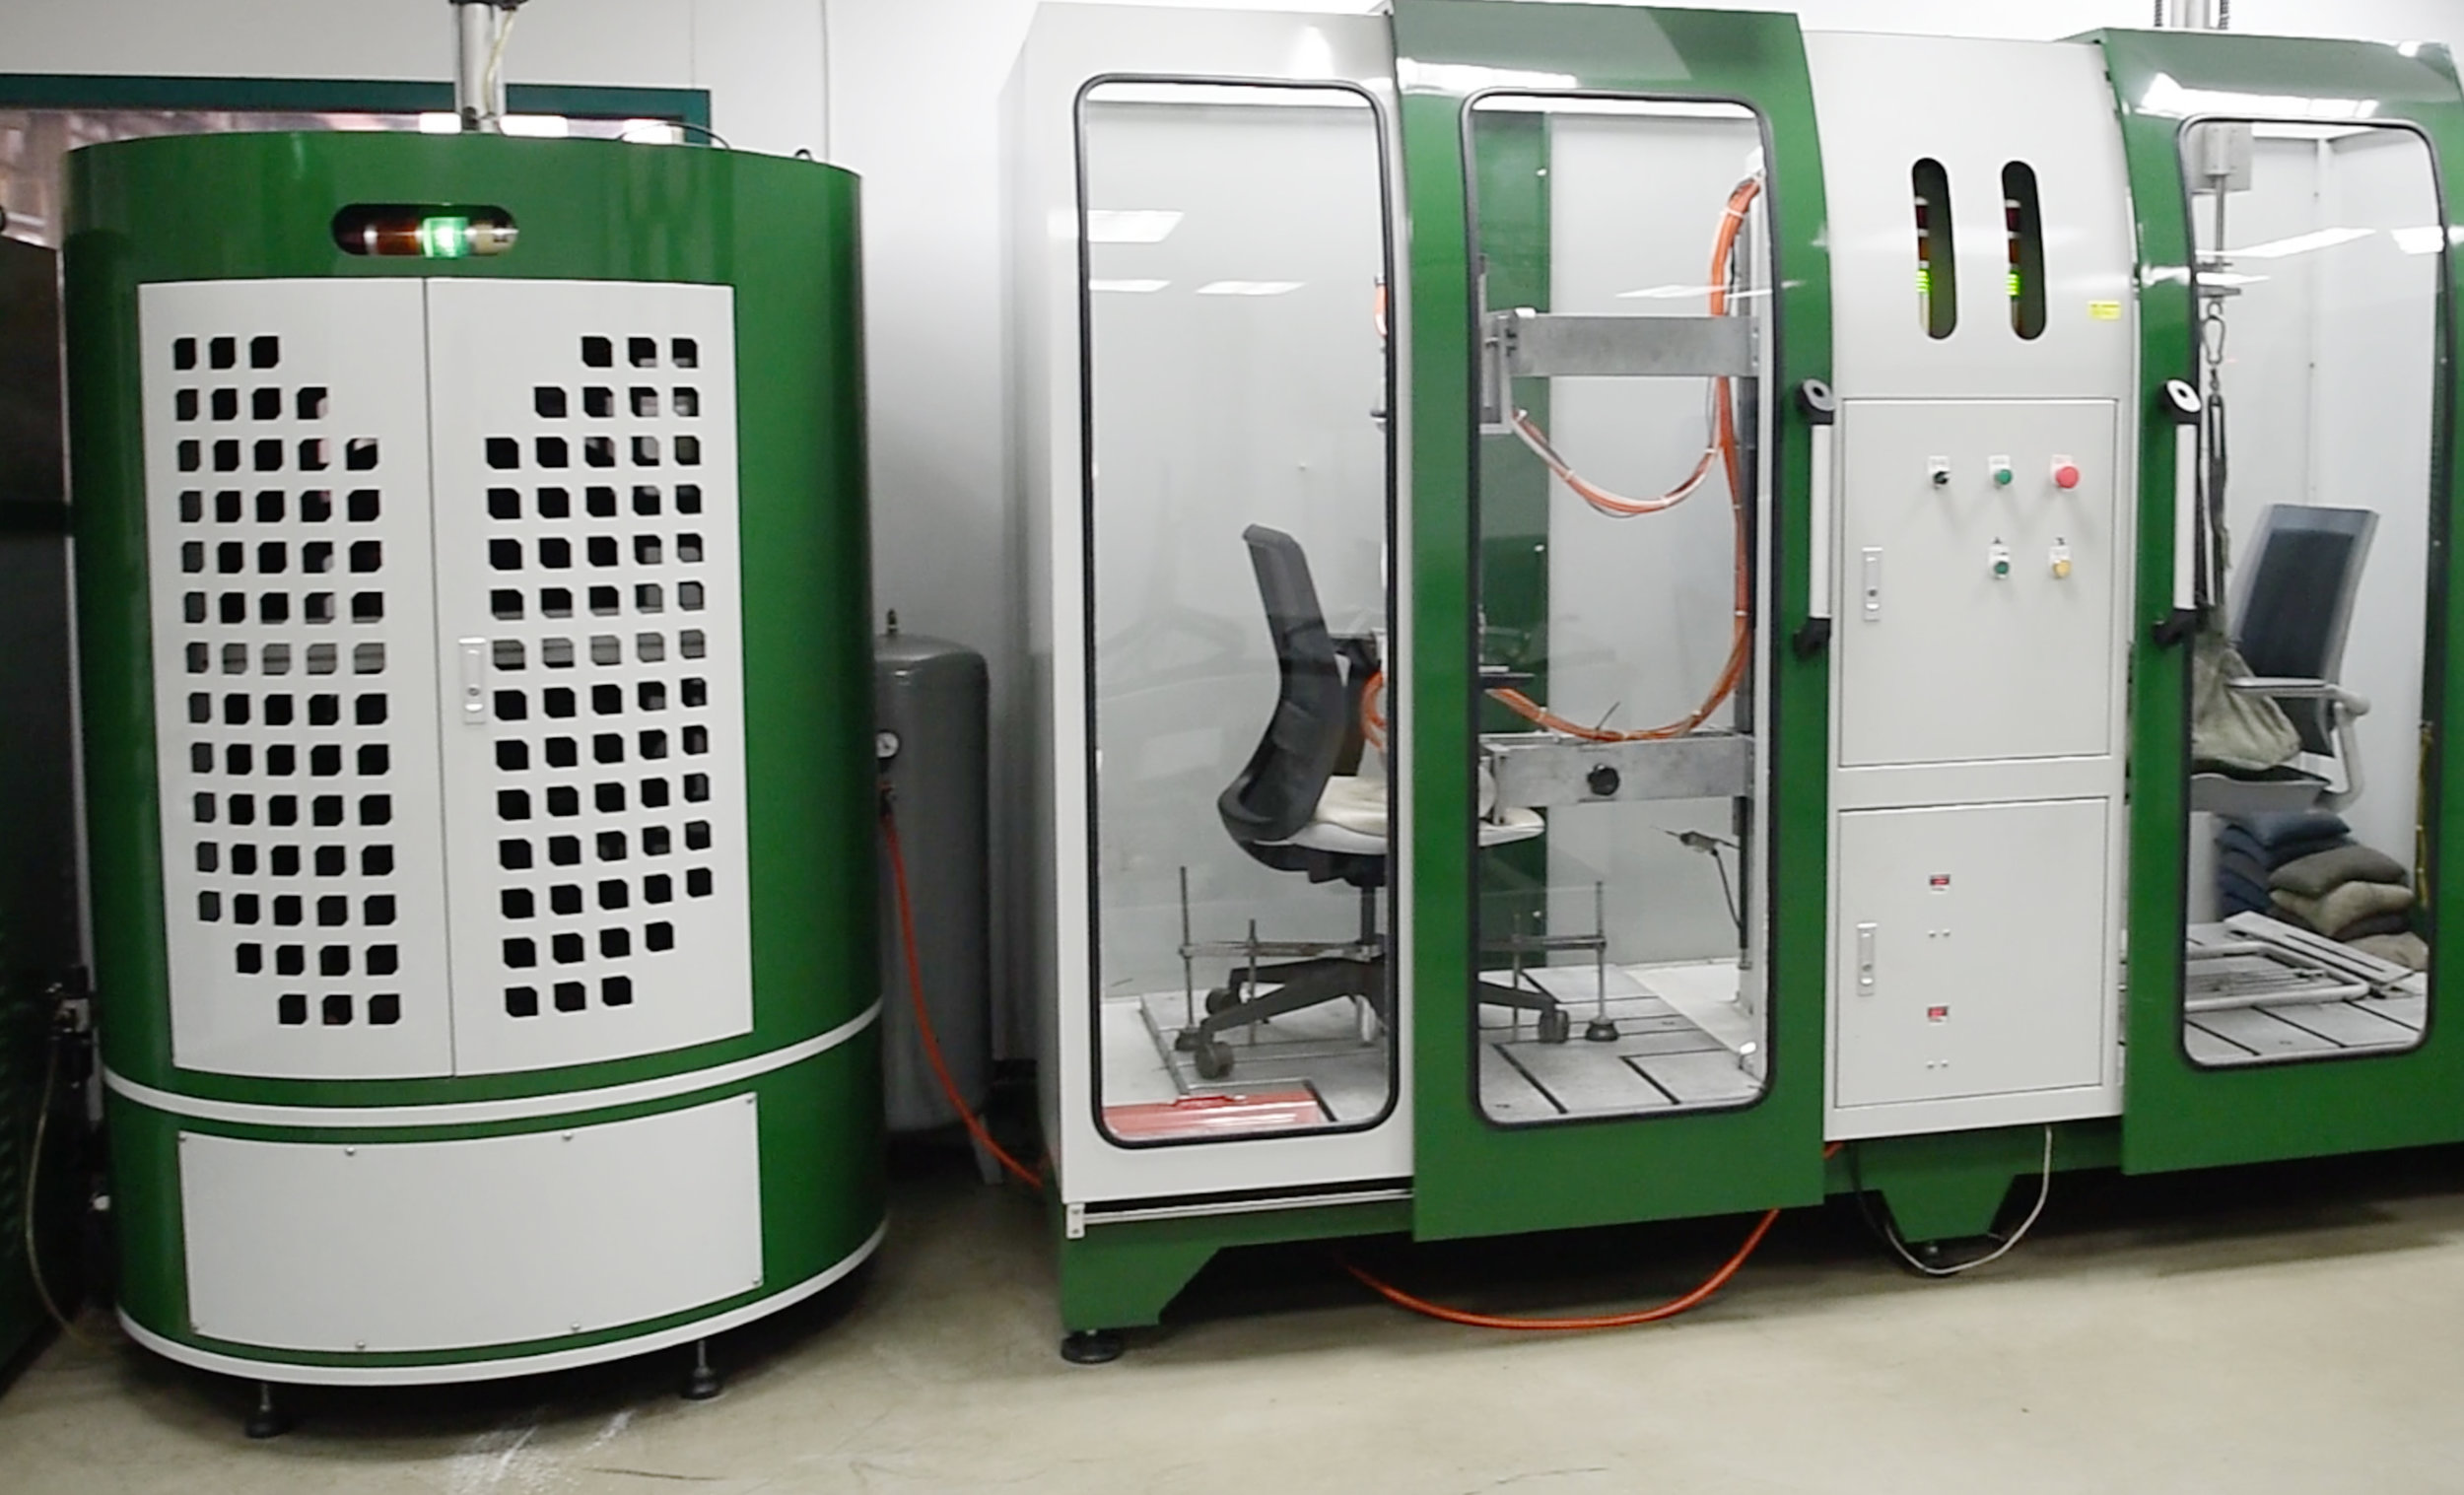 In-House Lab - We have an in-house lab facility which we use to test prototype structure and check product quality during production.